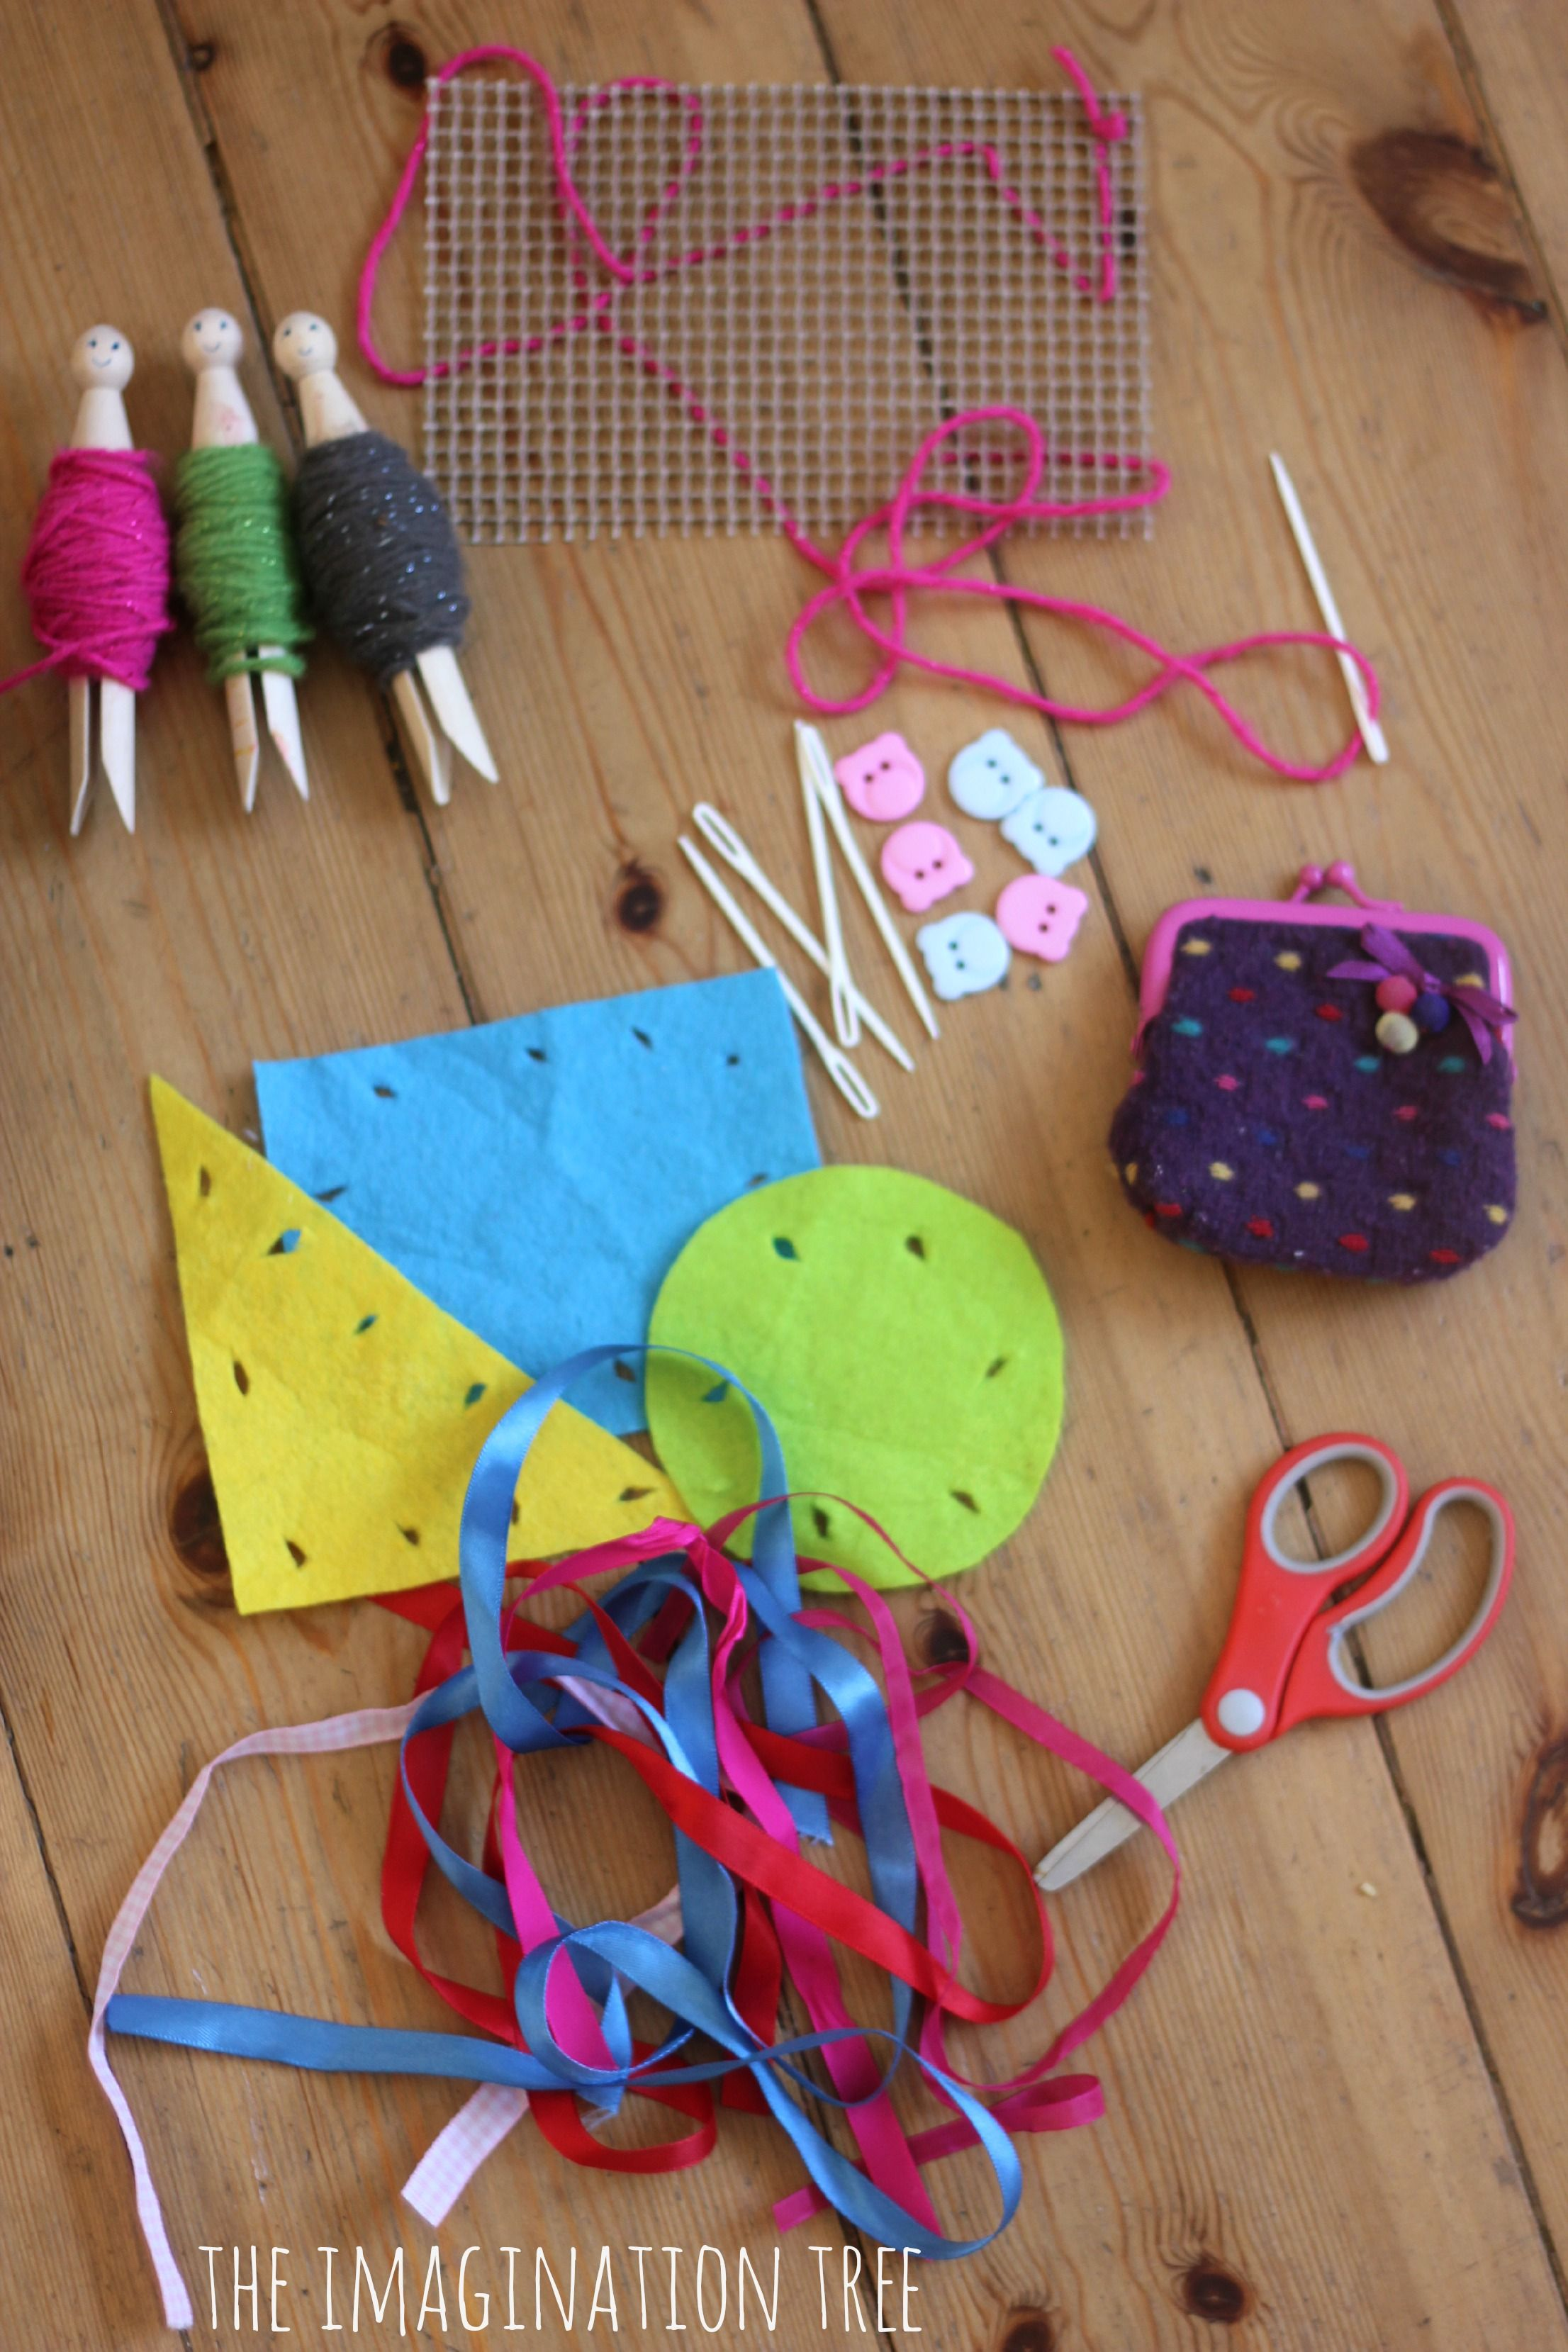 Sewing crafts for children - A First Sewing Kit For Kids